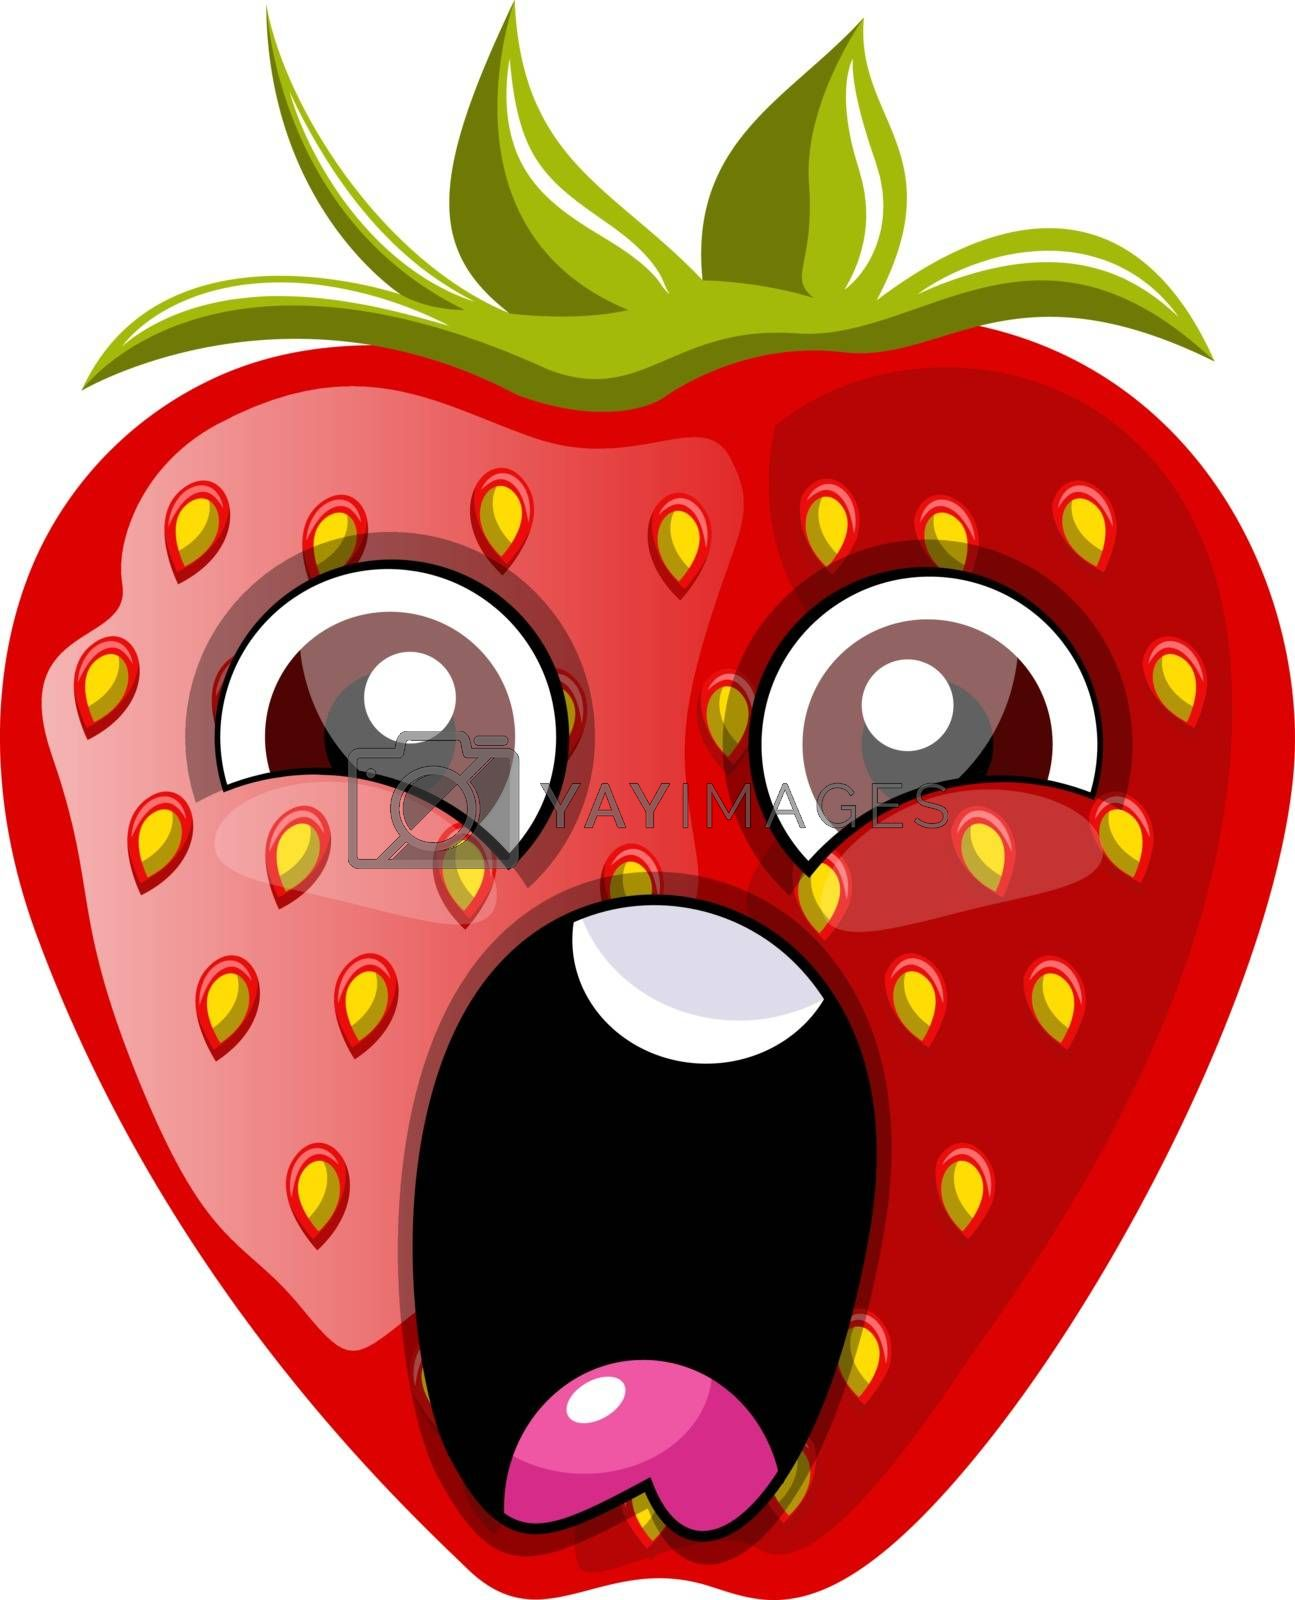 Royalty free image of Screaming red strawberry illustration vector on white background by Morphart